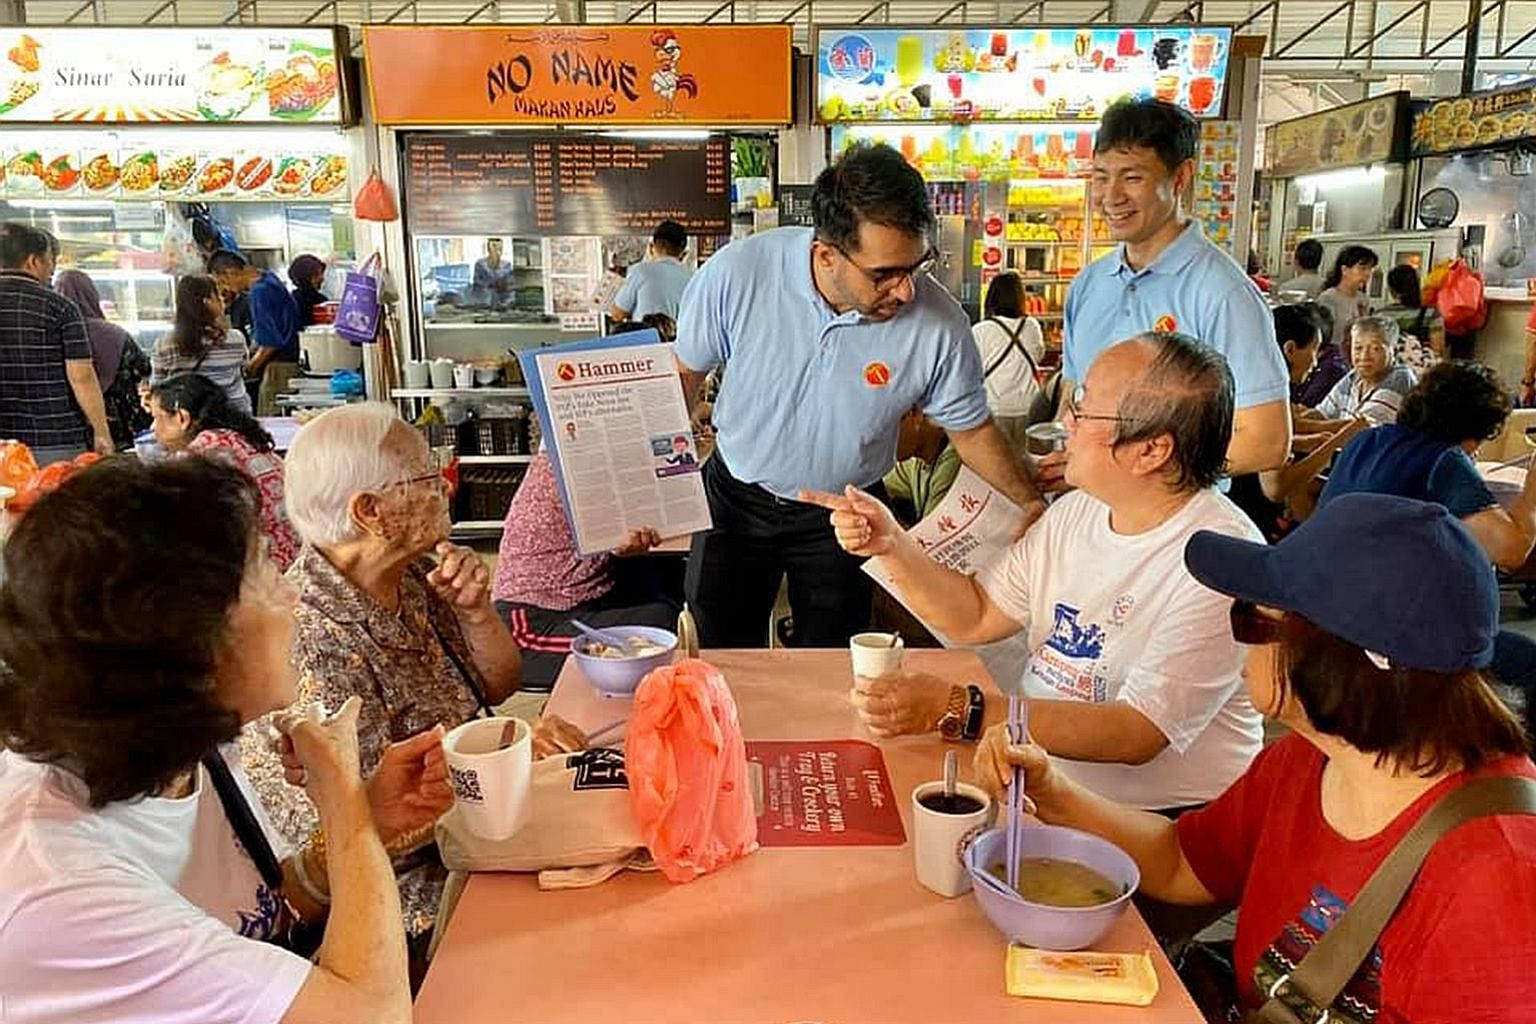 """Workers' Party chief Pritam Singh during one of the party's walkabouts last month. In his speech at the WP annual members forum, Mr Singh said the opposition's role is to make sure the ruling party """"does not have a blank cheque to do whatever it want"""